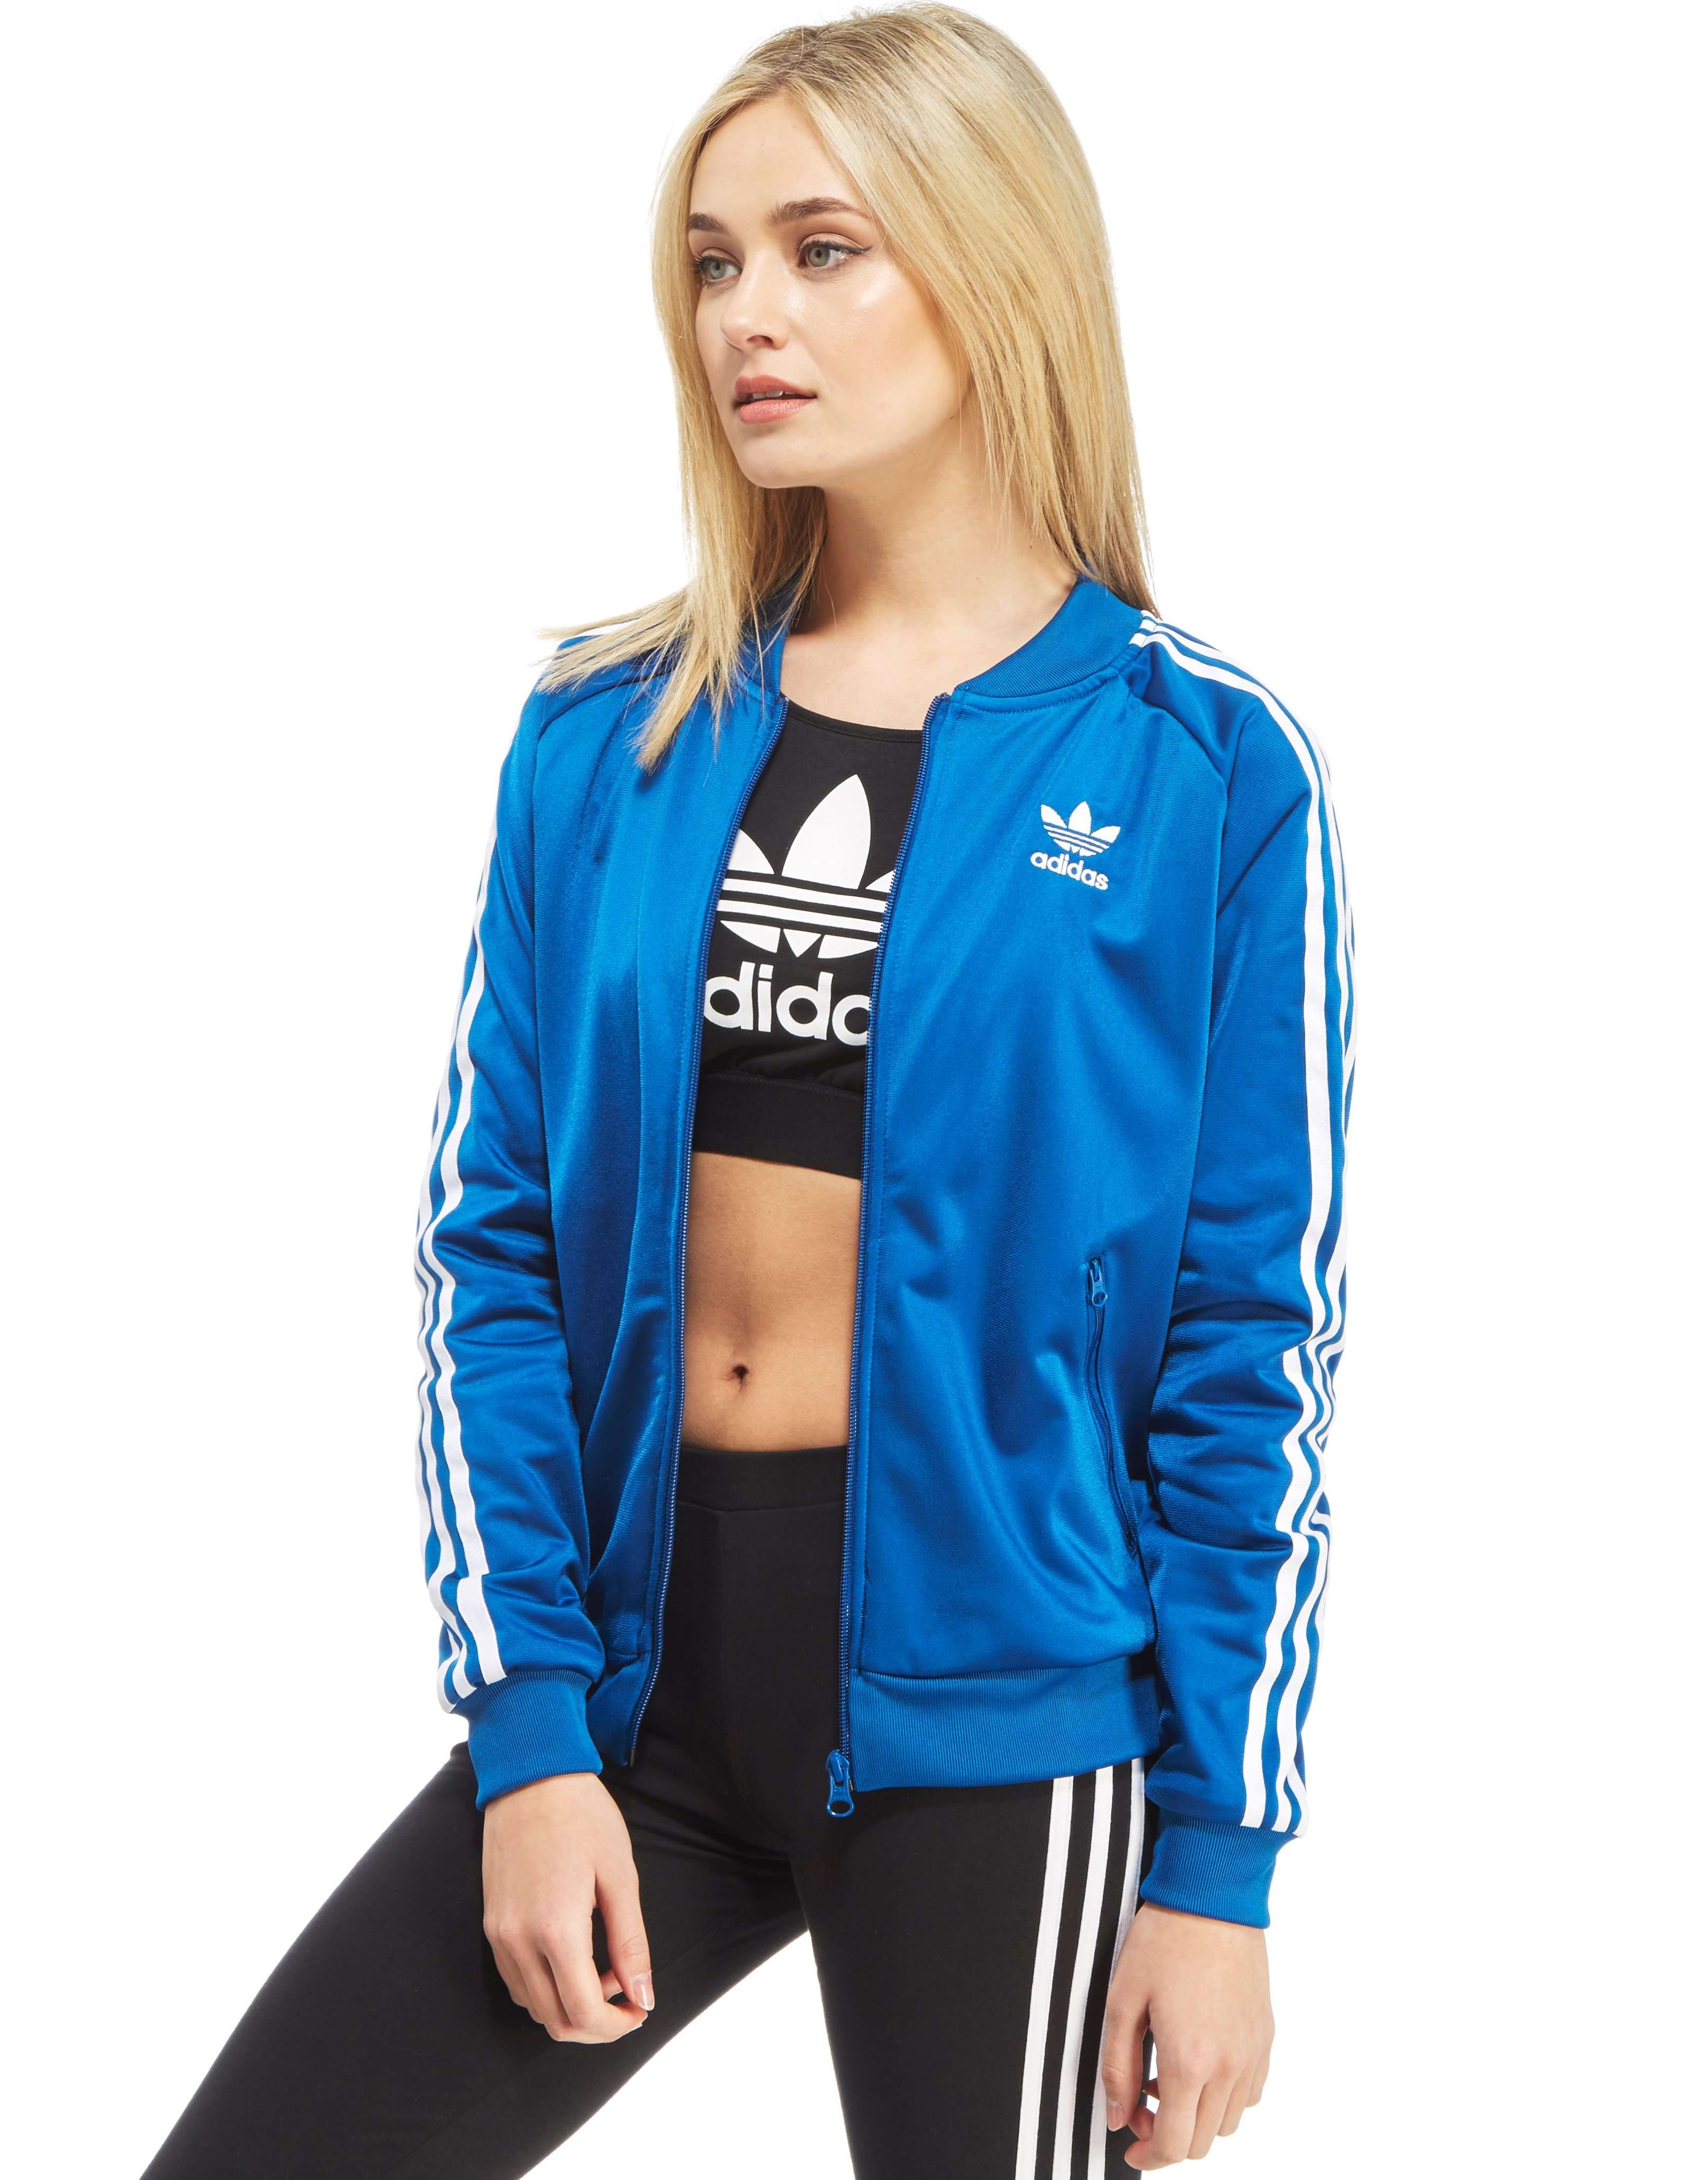 1691146ff3 adidas Originals Supergirl Track Top - Shop online voor adidas Originals  Supergirl Track Top met JD Sports